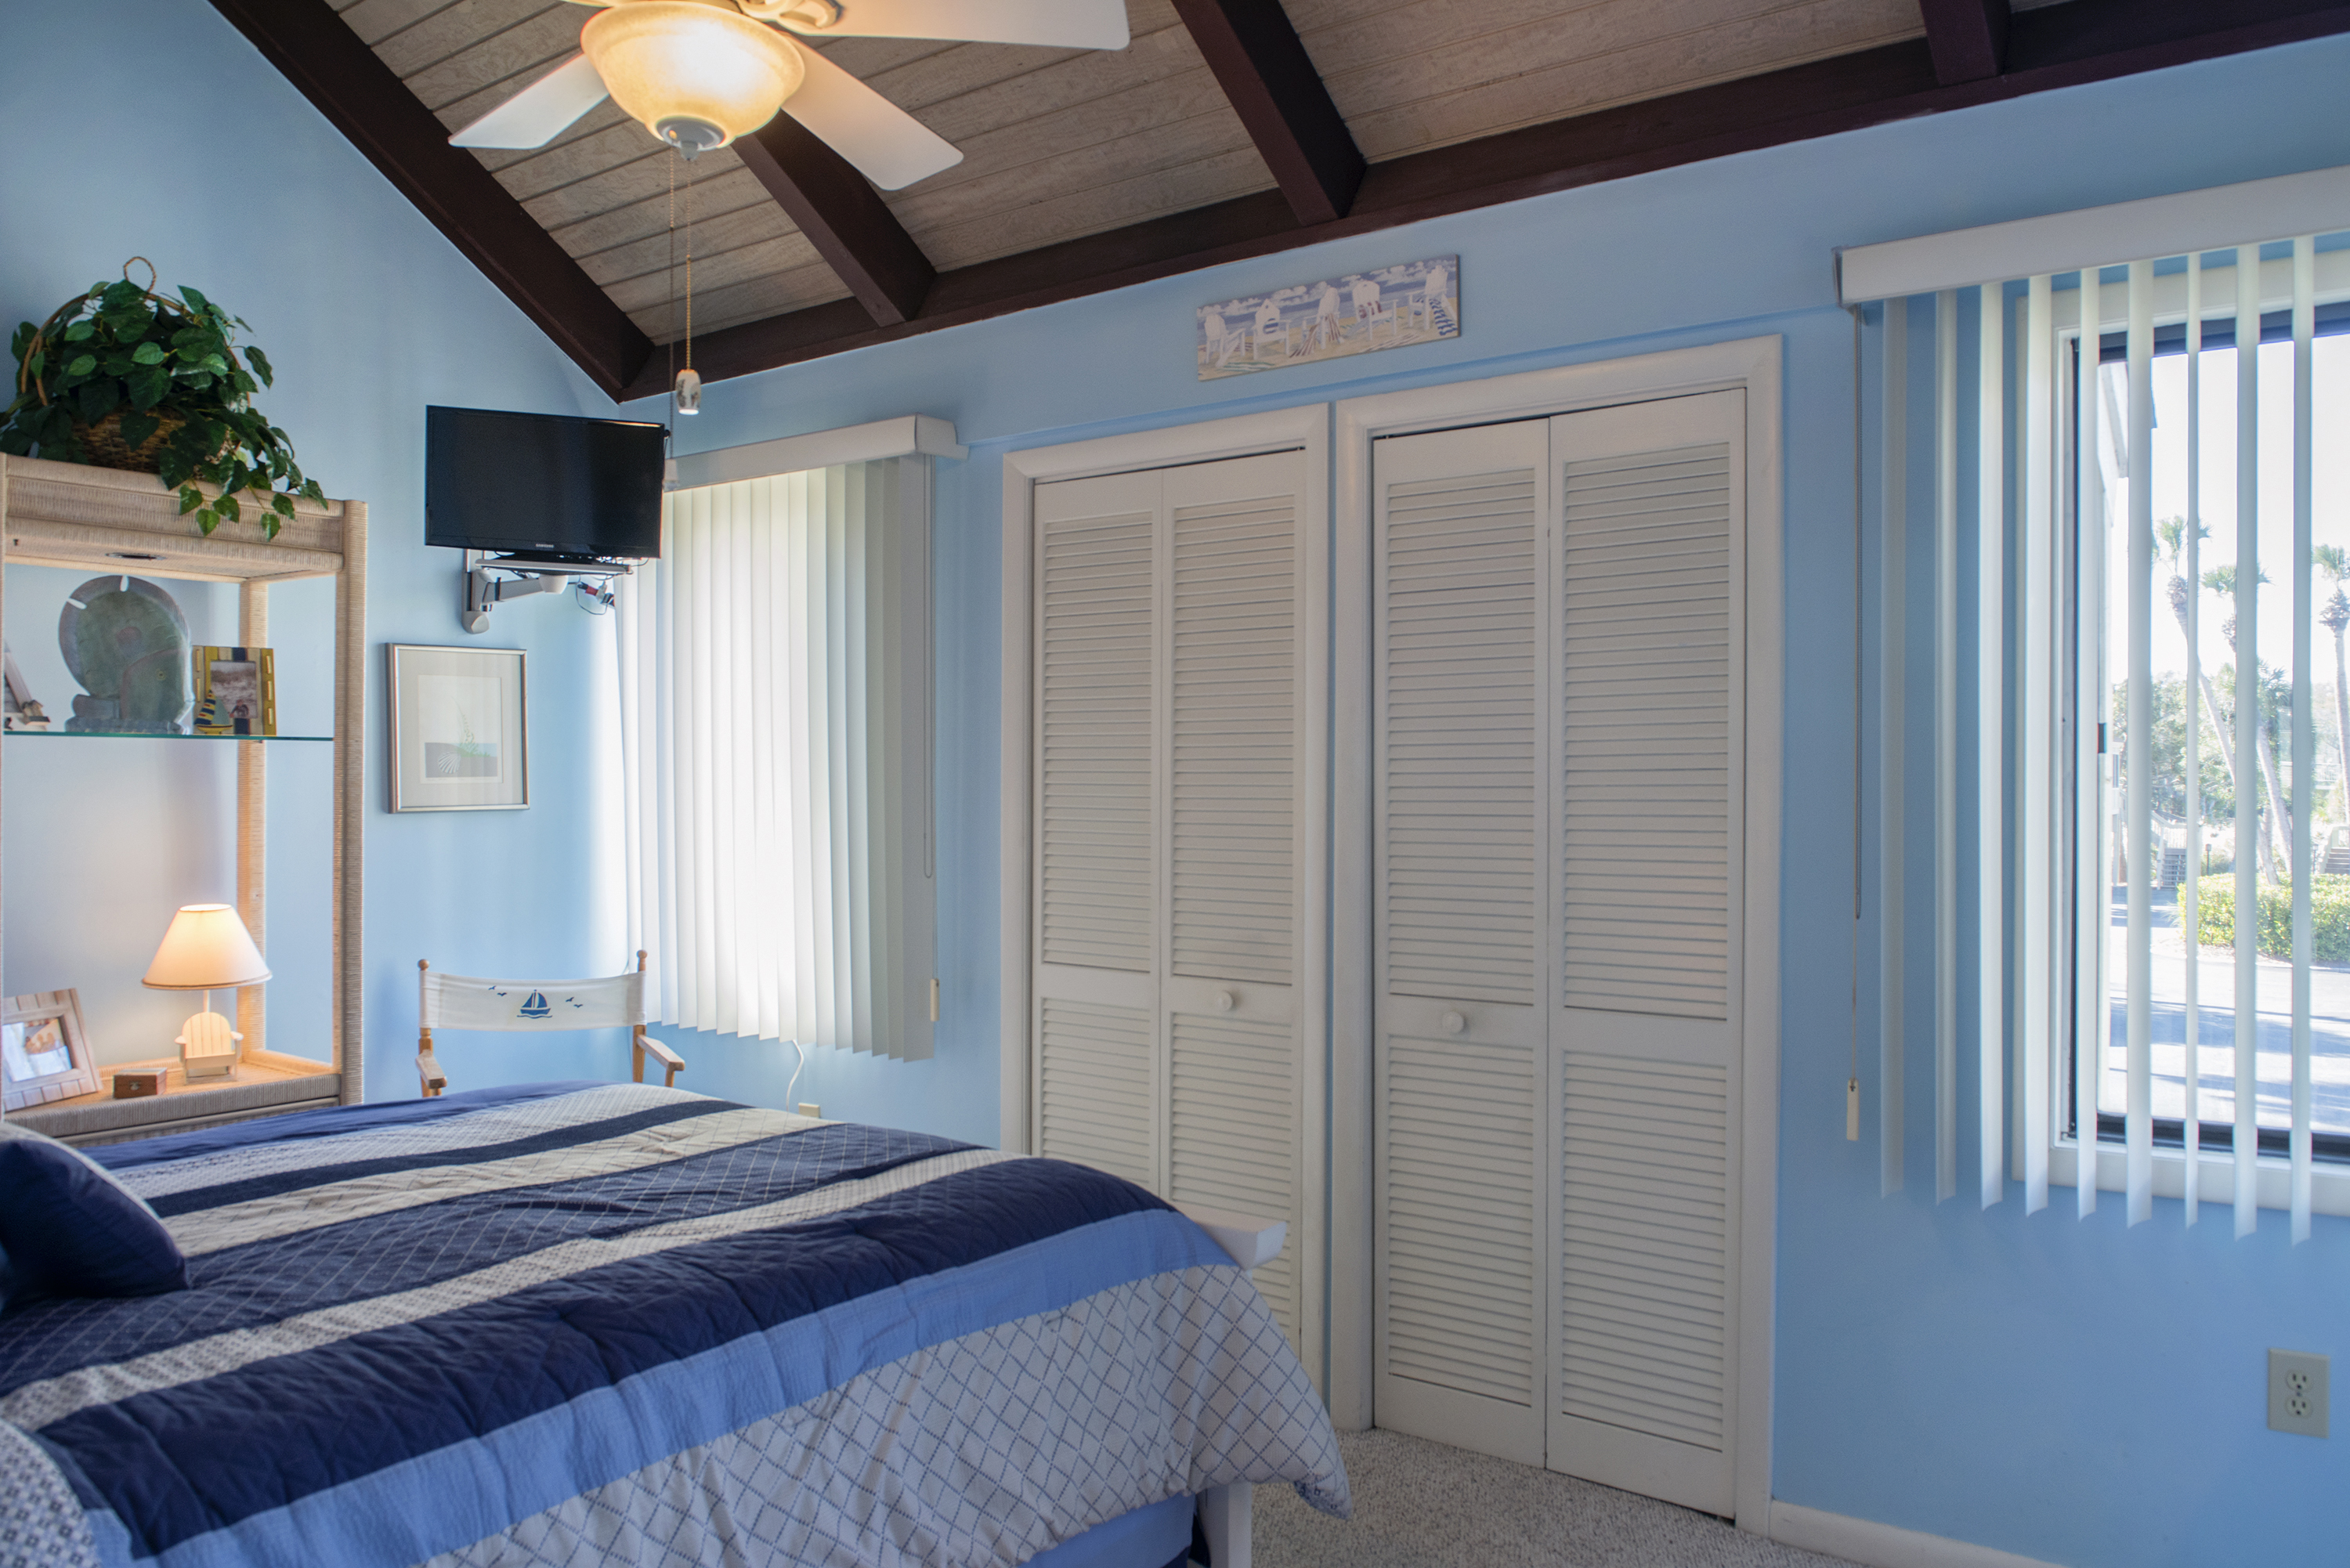 A wall mounted TV and plenty of closet space are in this bedroom.